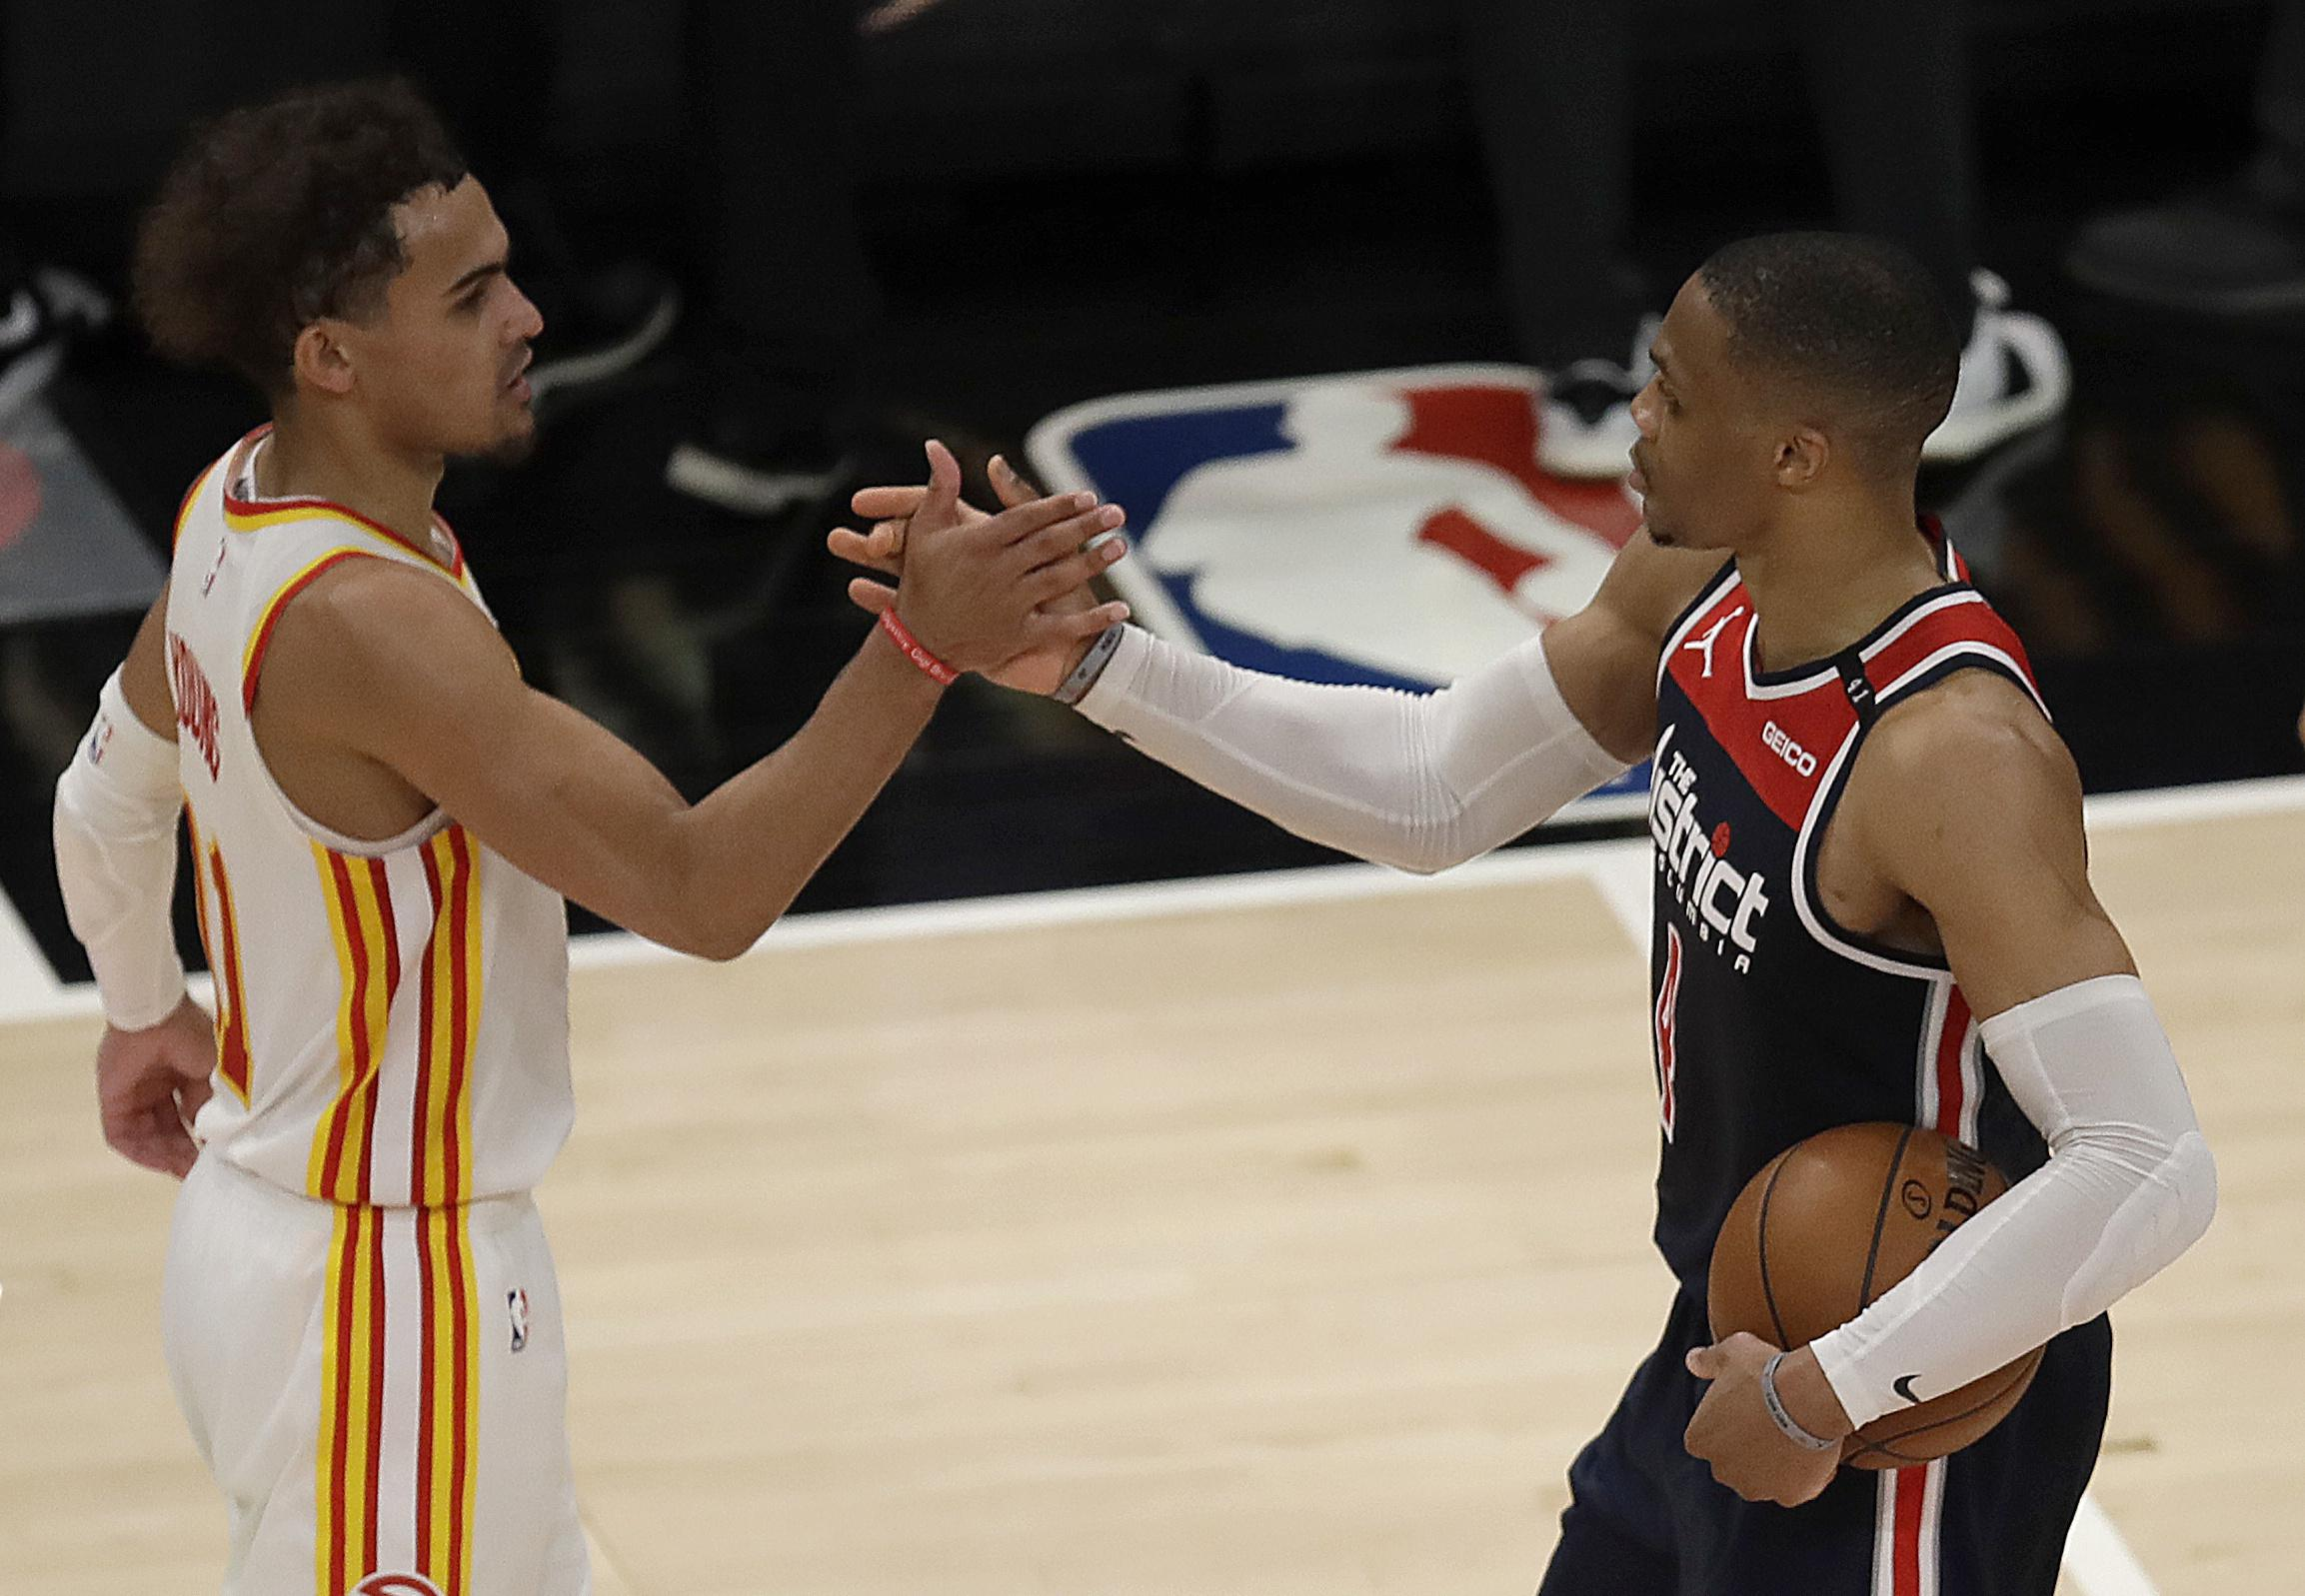 Westbrook breaks Robertson's record as Wizards fall to Hawks